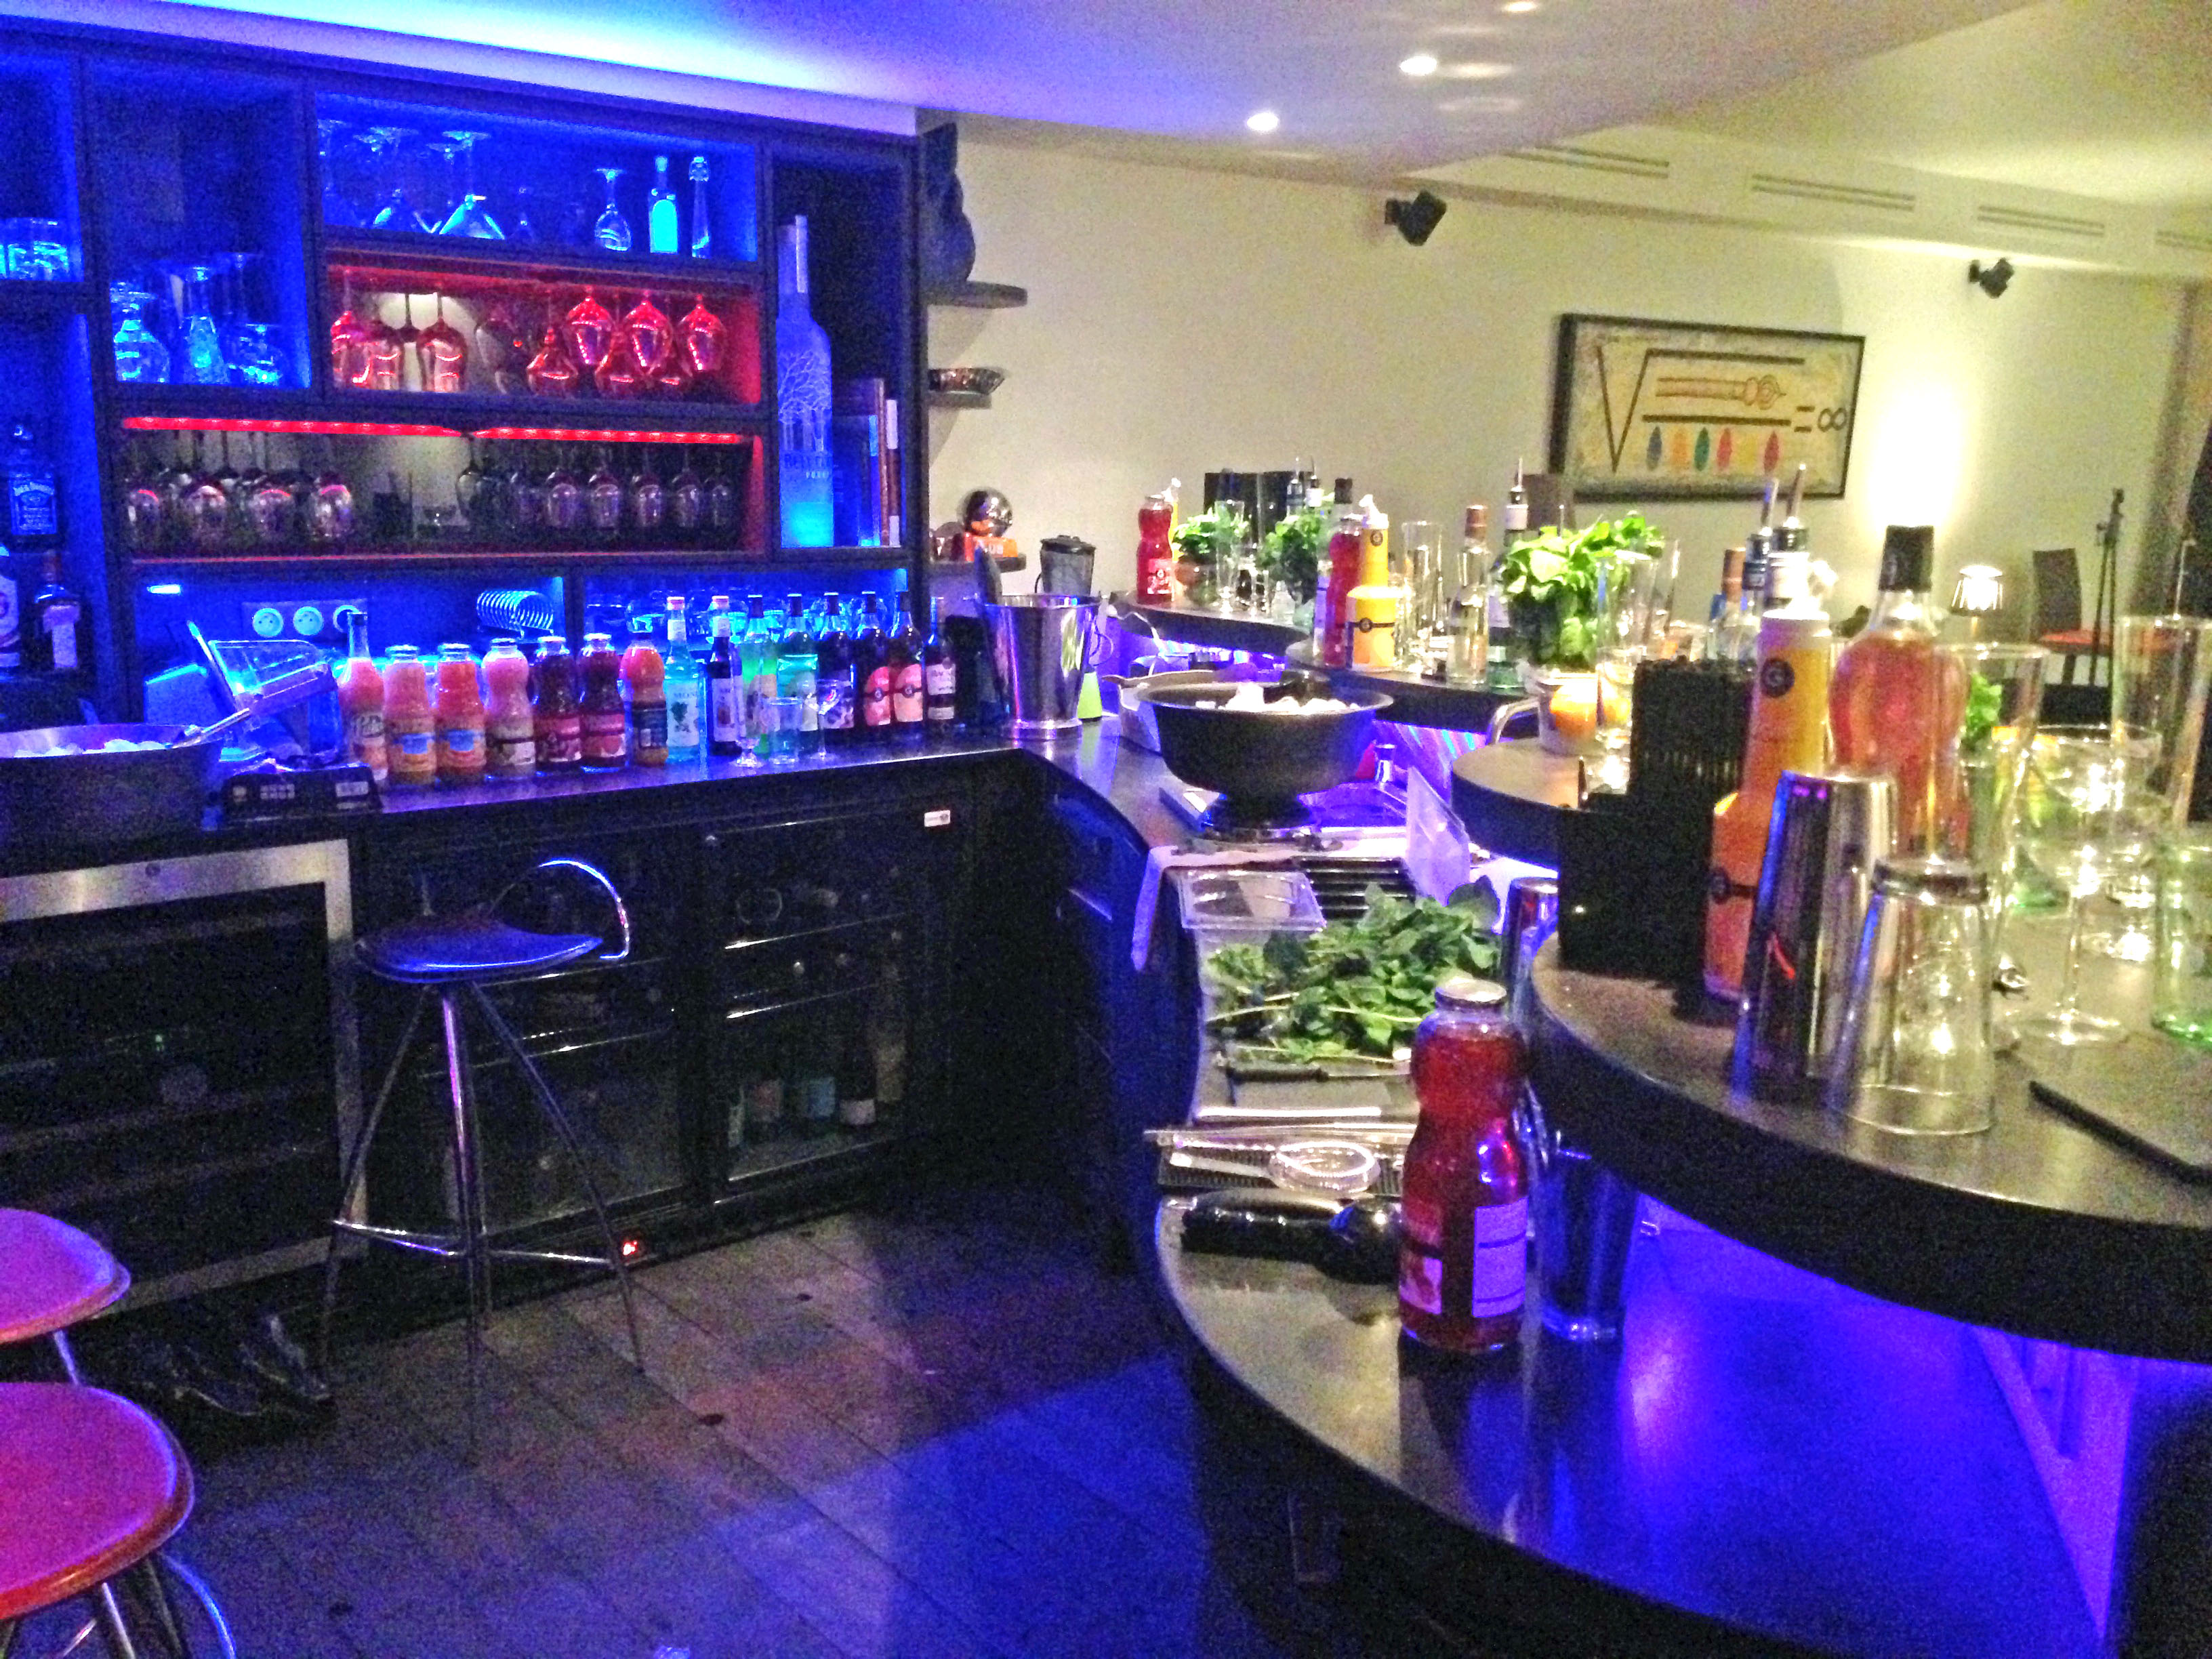 Atelier, cocktails, barman